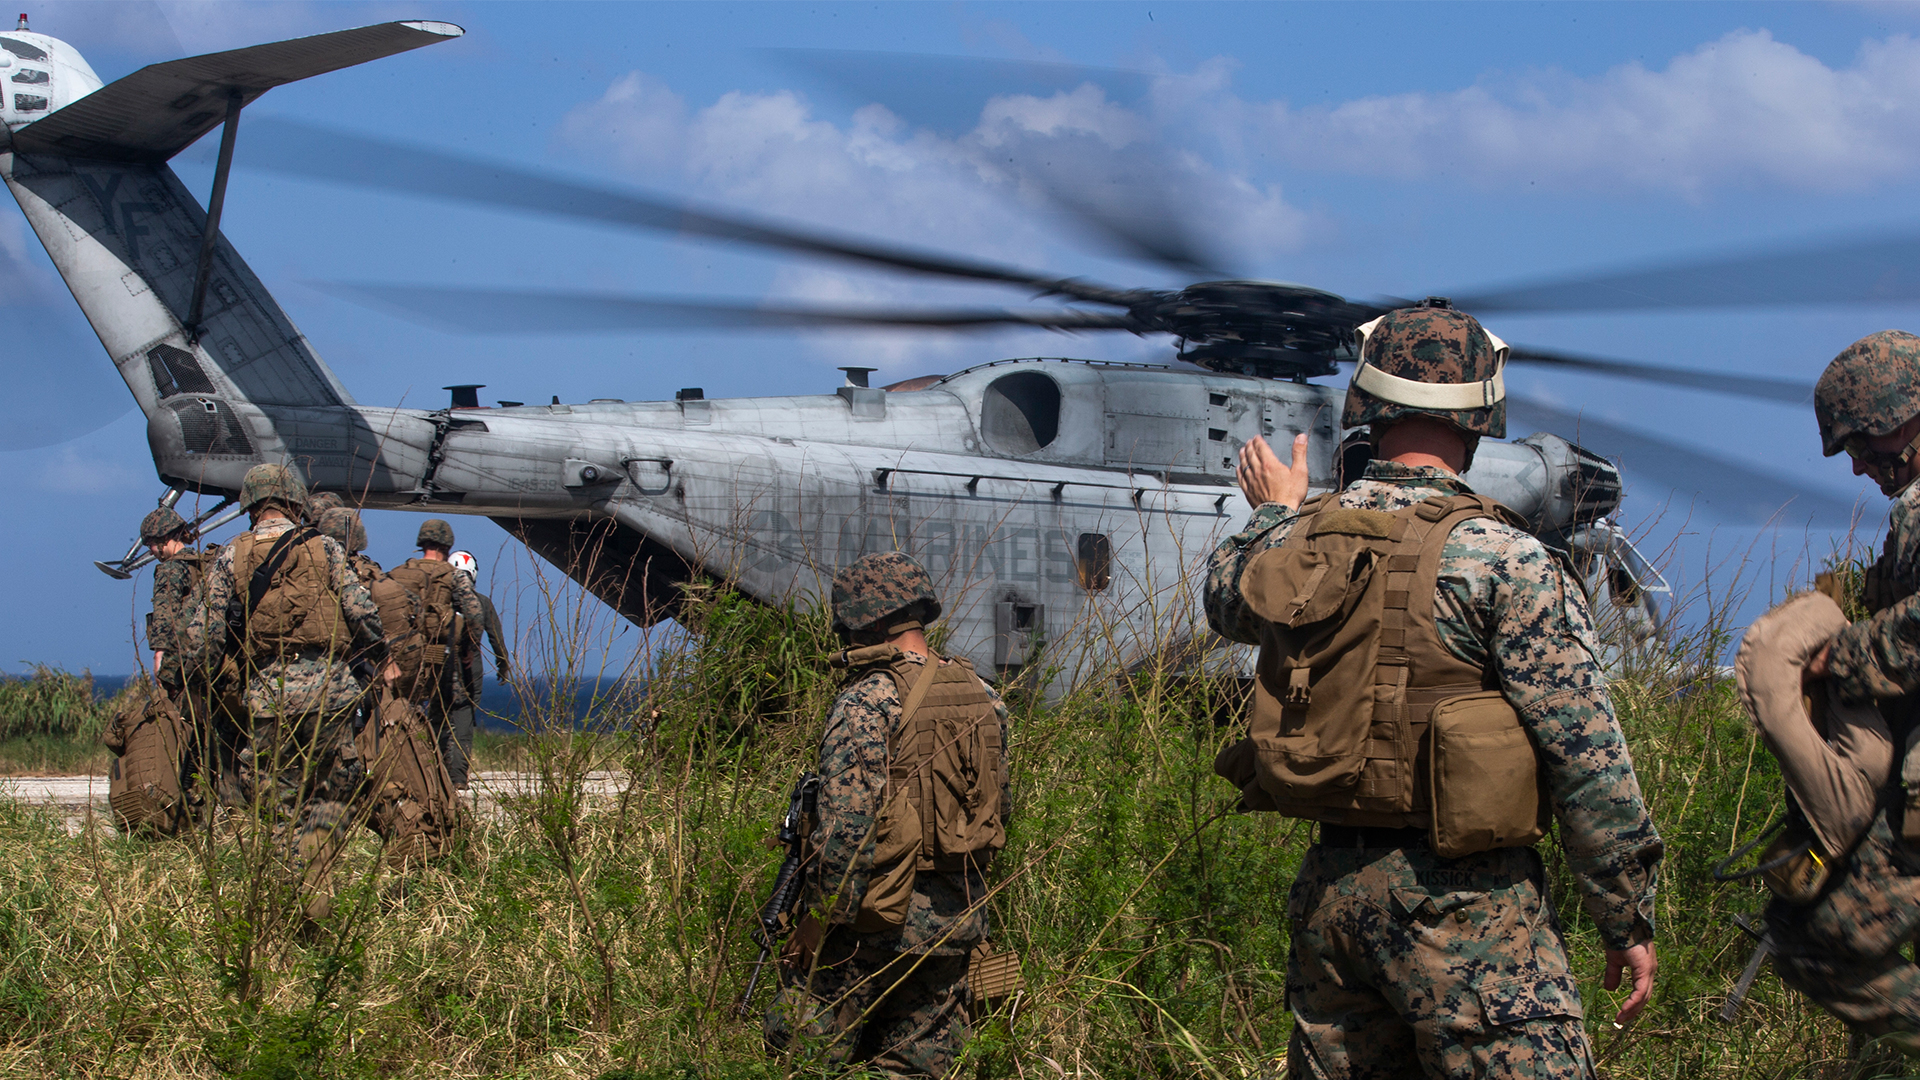 Marines preparing helicopter for deployment